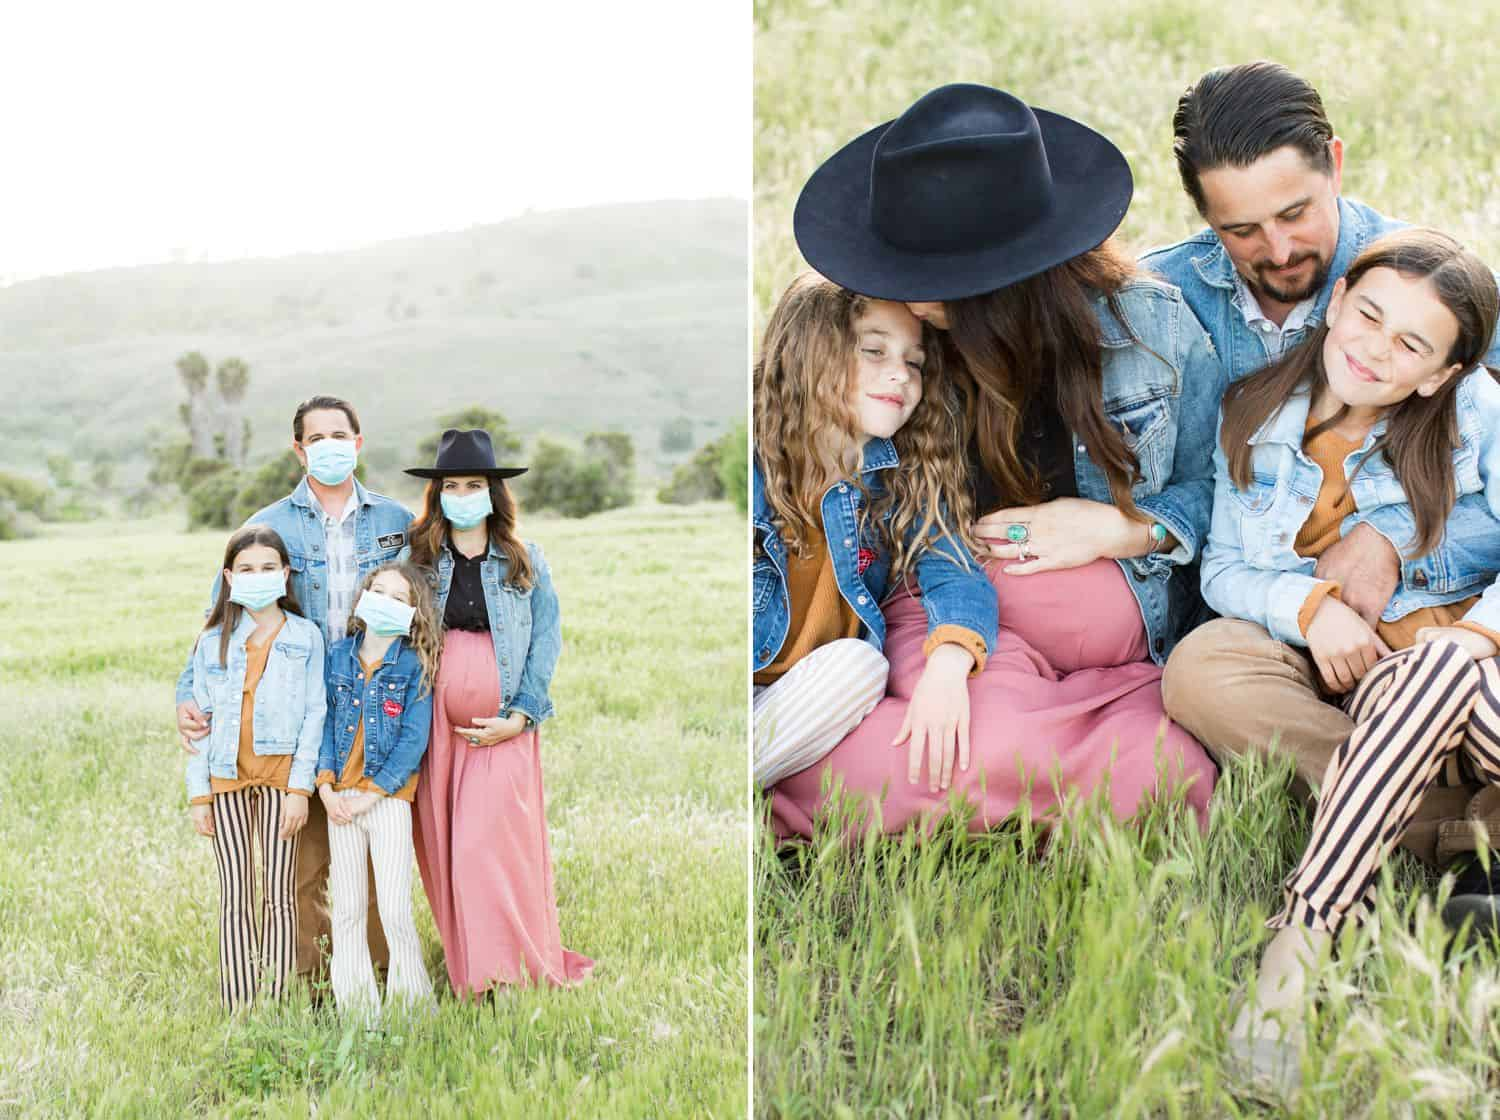 A family is photographed in a field wearing medical masks during coronavirus 2020